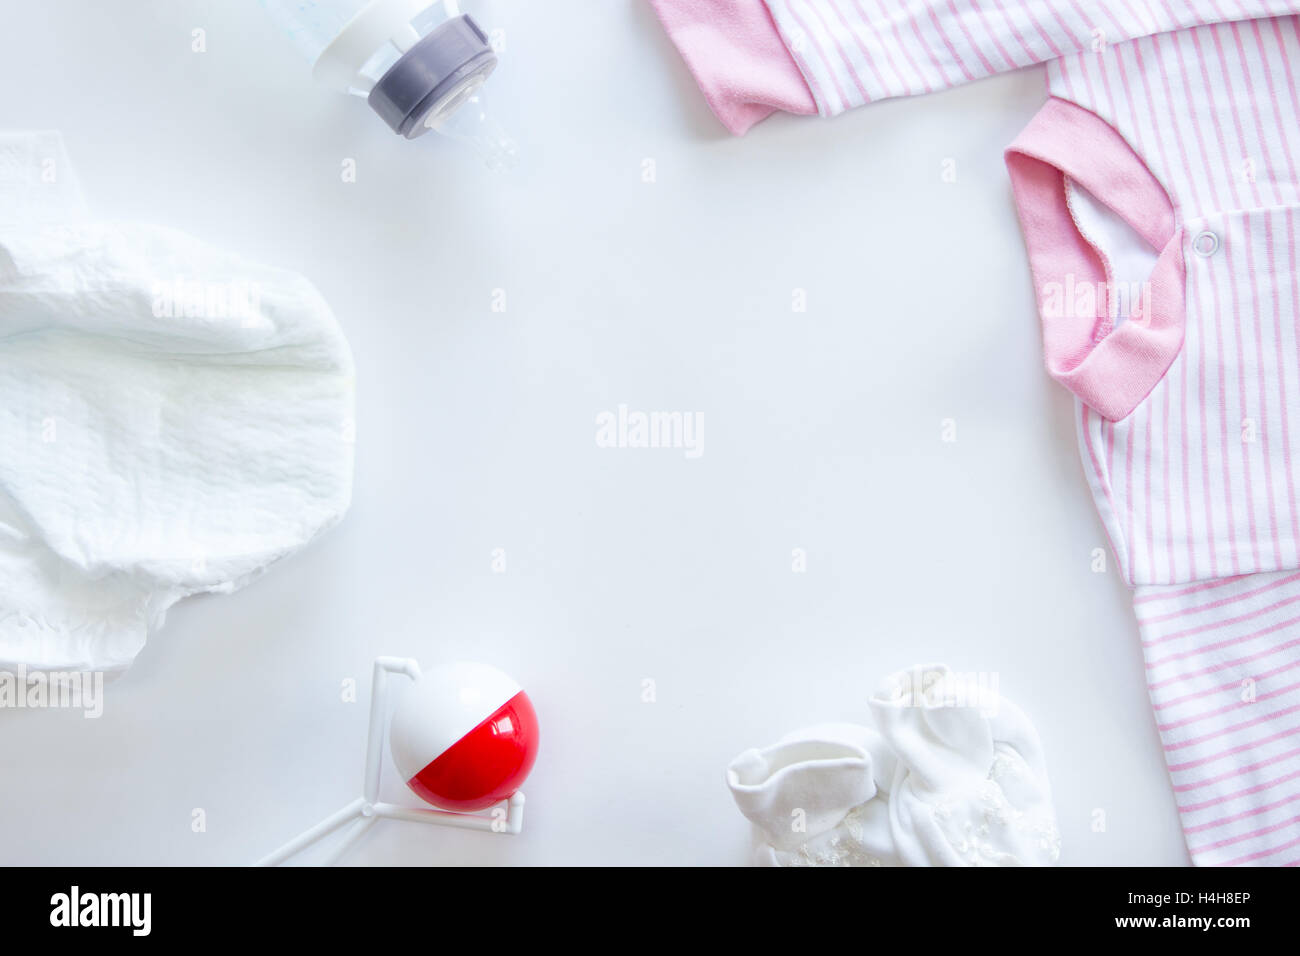 Set of baby supplies on table: diaper, beanbag, bottle, suit - Stock Image